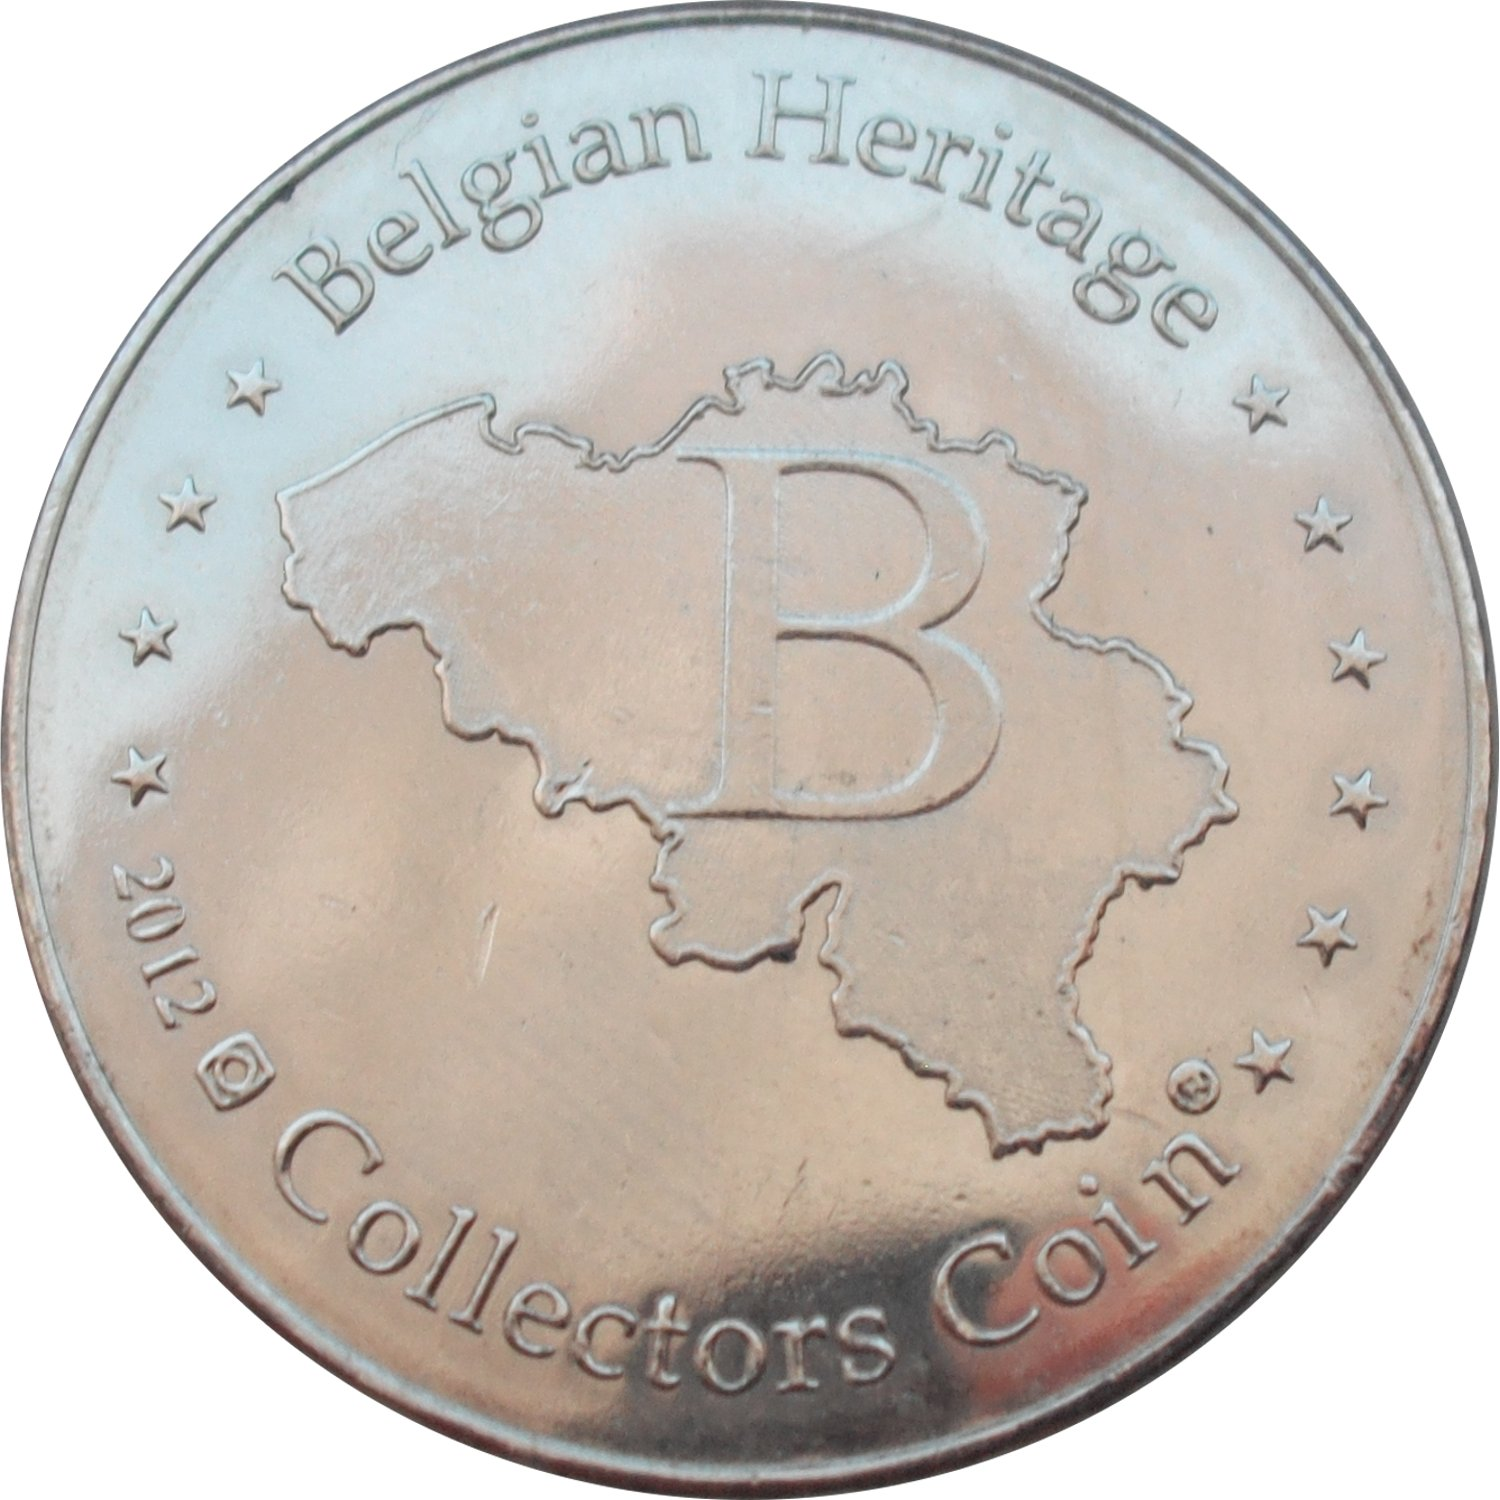 Collecting? Join the club! Coin collecting is one of the oldest hobbies in the world. People collect coins for many different reasons. Some people collect bullion coins for their value. Some people collect historical coins made hundreds of years ago.